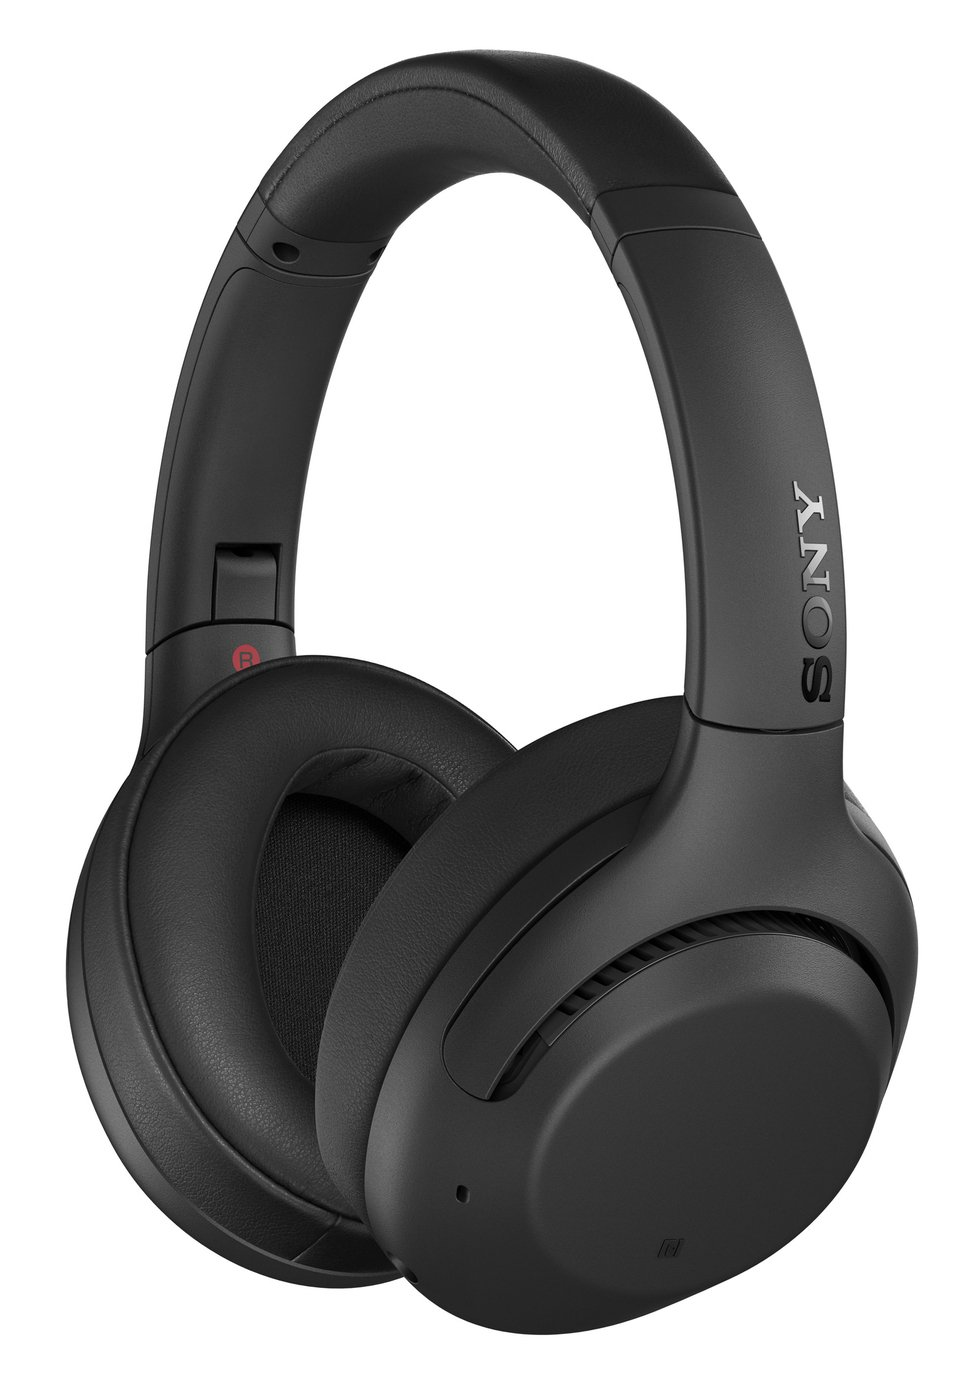 Sony WH-XB900N Over-Ear Wireless Headphones- Black